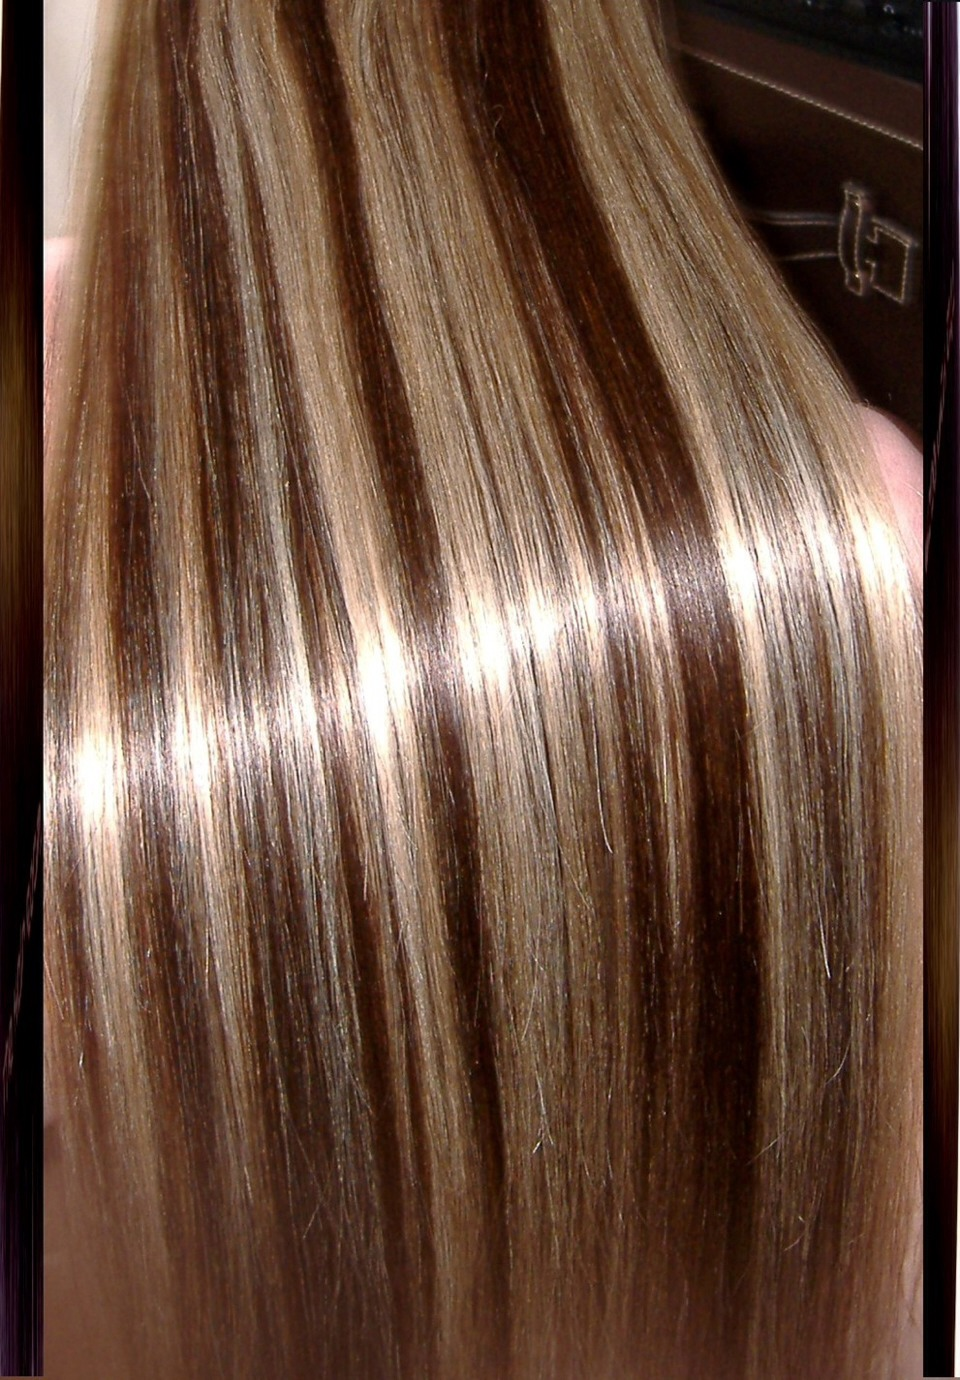 Make sure you buy human/remy hair. Synthetic hair will not dye, it will just damage. Hair extensions usually have a protective coating on them, so just wash hair with a dandruff shampoo to break down the coating! Let them air dry and you're good to go. Extensions will be ready for dye!